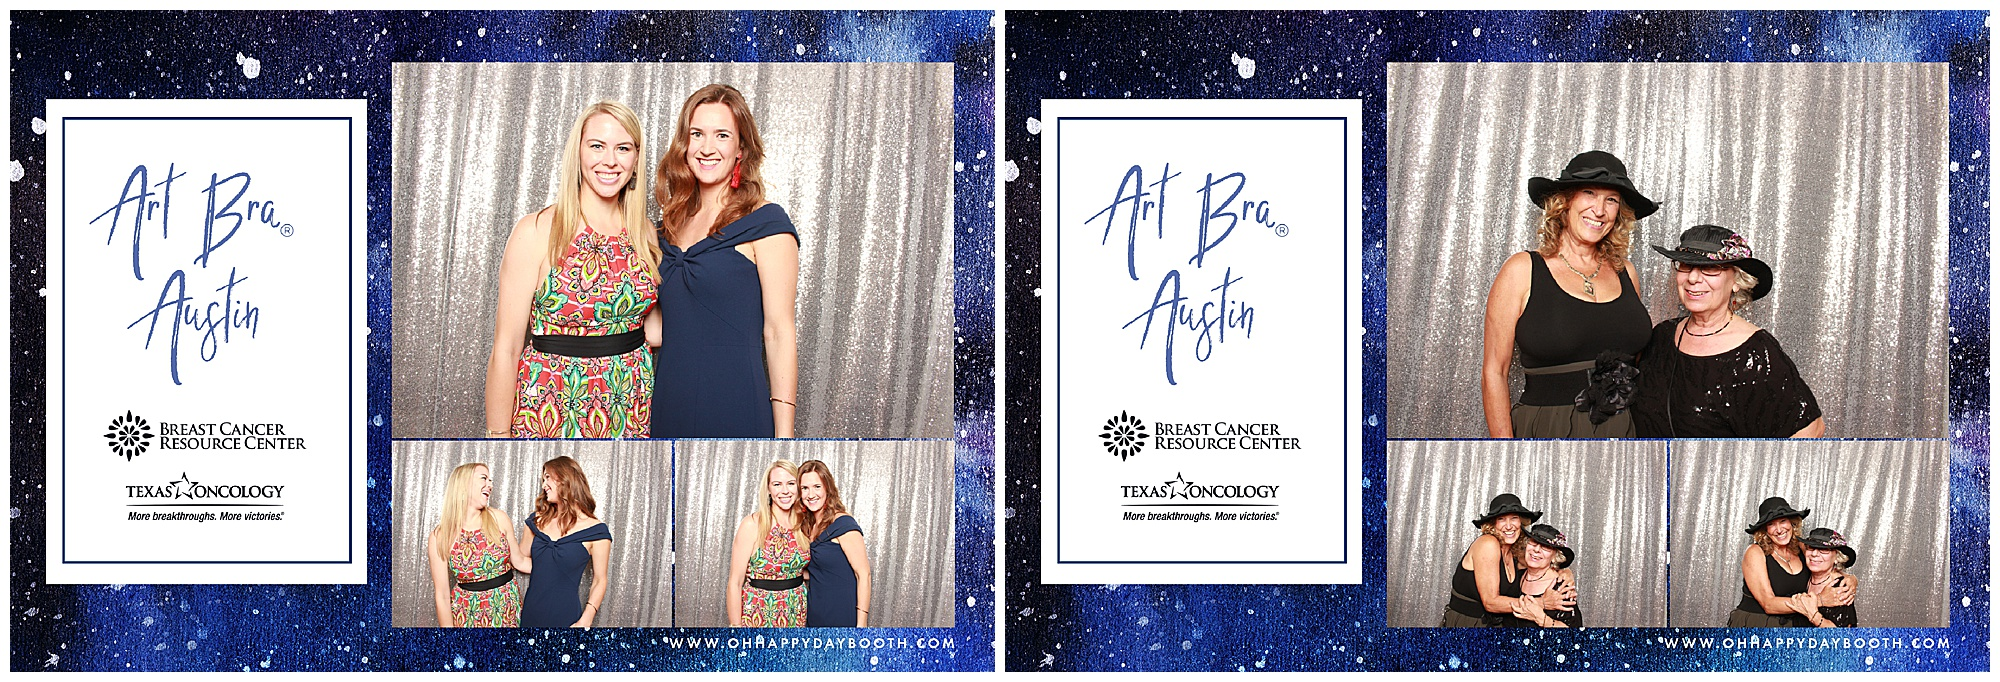 austin wedding photo booth_0011.jpg